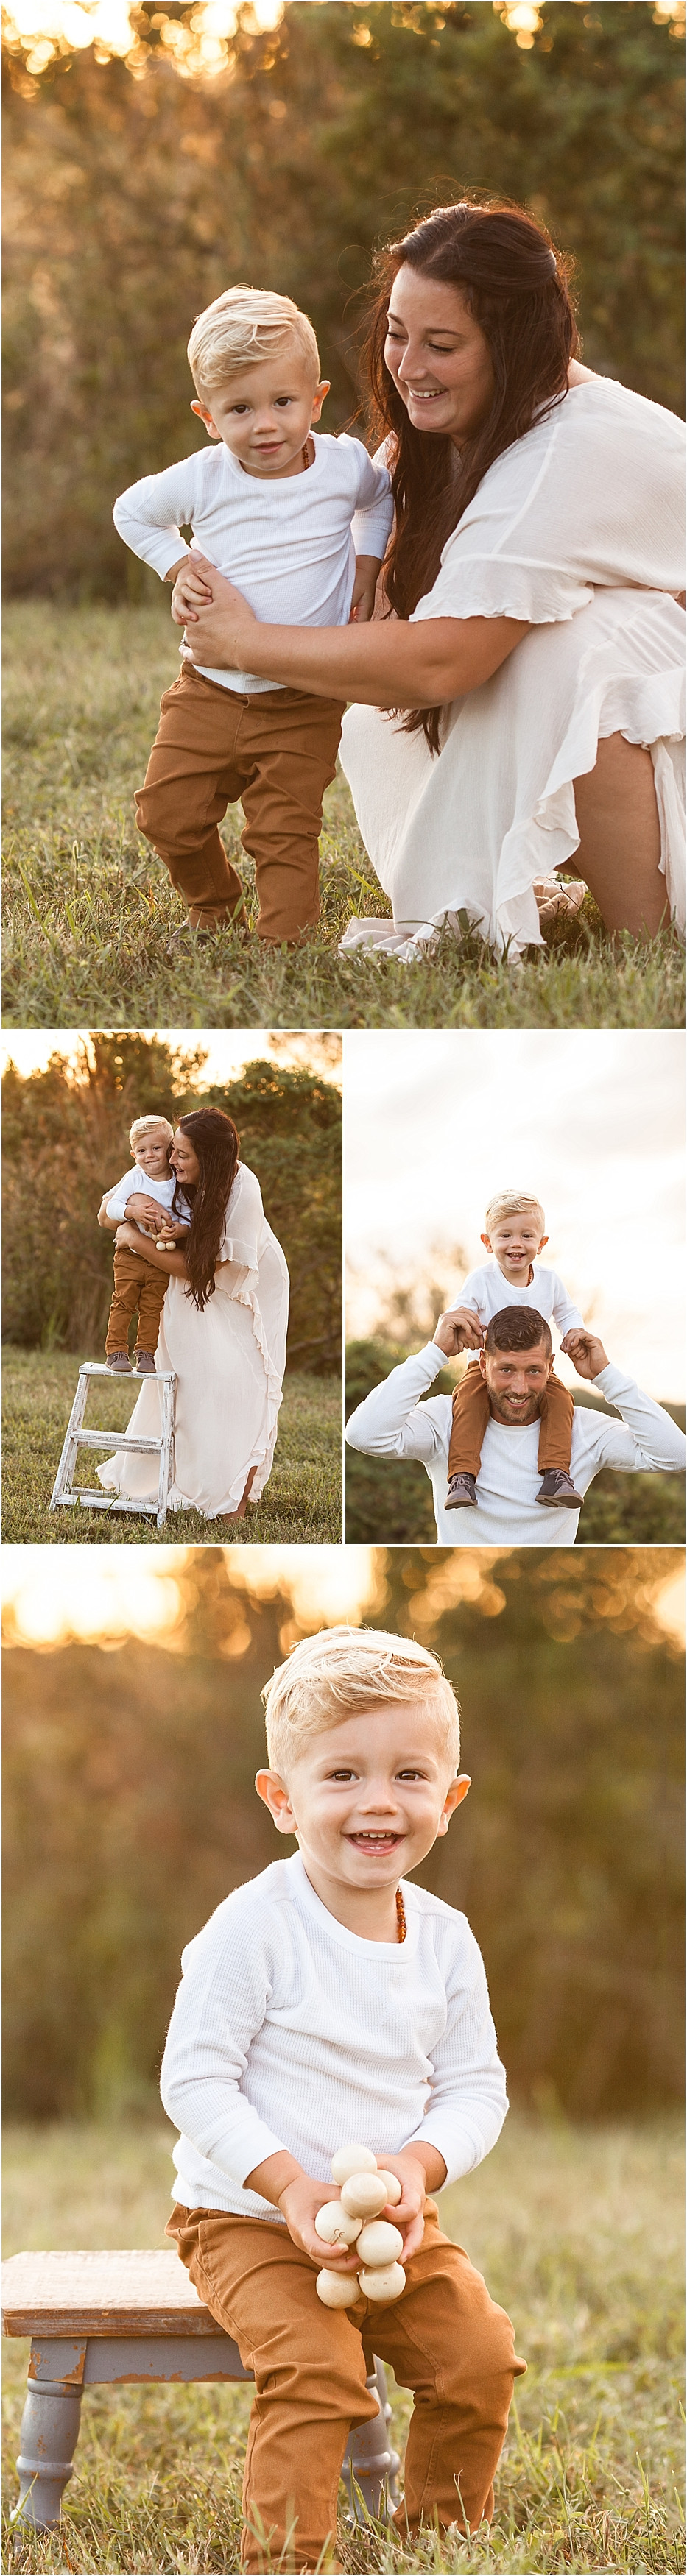 Sarasota Family Photographer Sunset session in the field